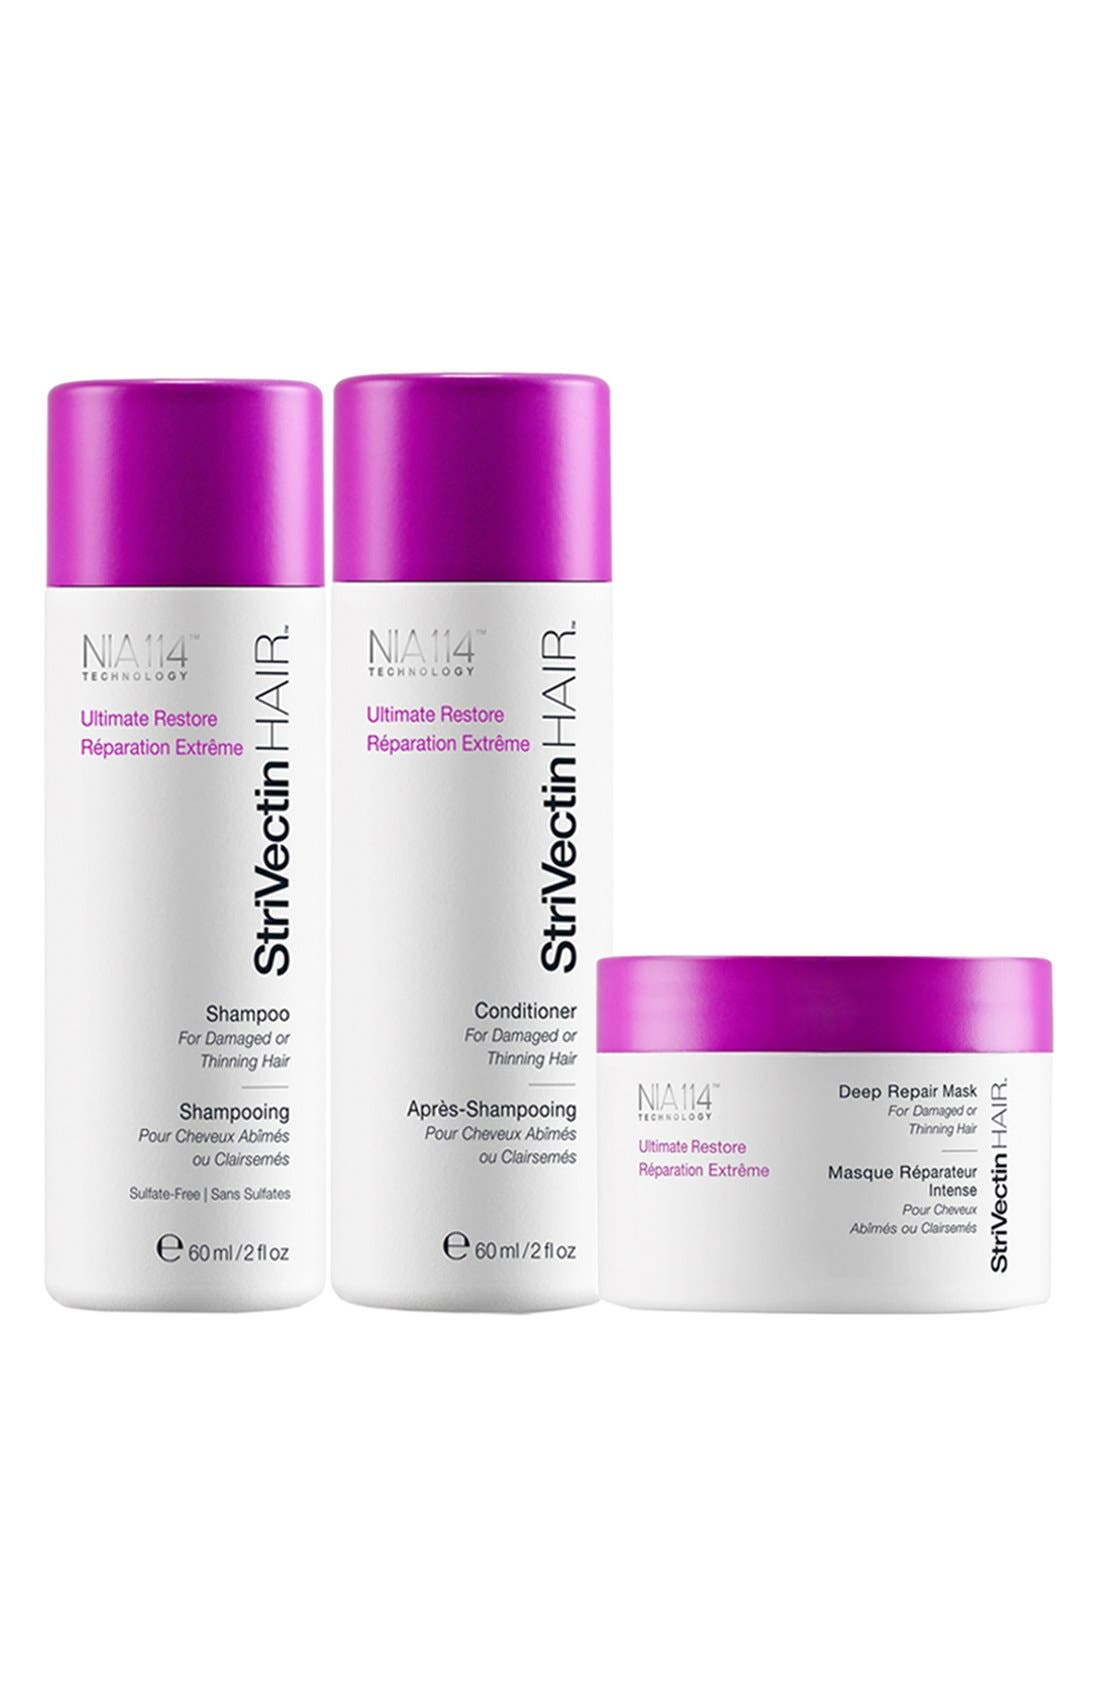 StriVectinHAIR™ 'Ultimate Restore' Starter Trio for Damaged or Thinning Hair